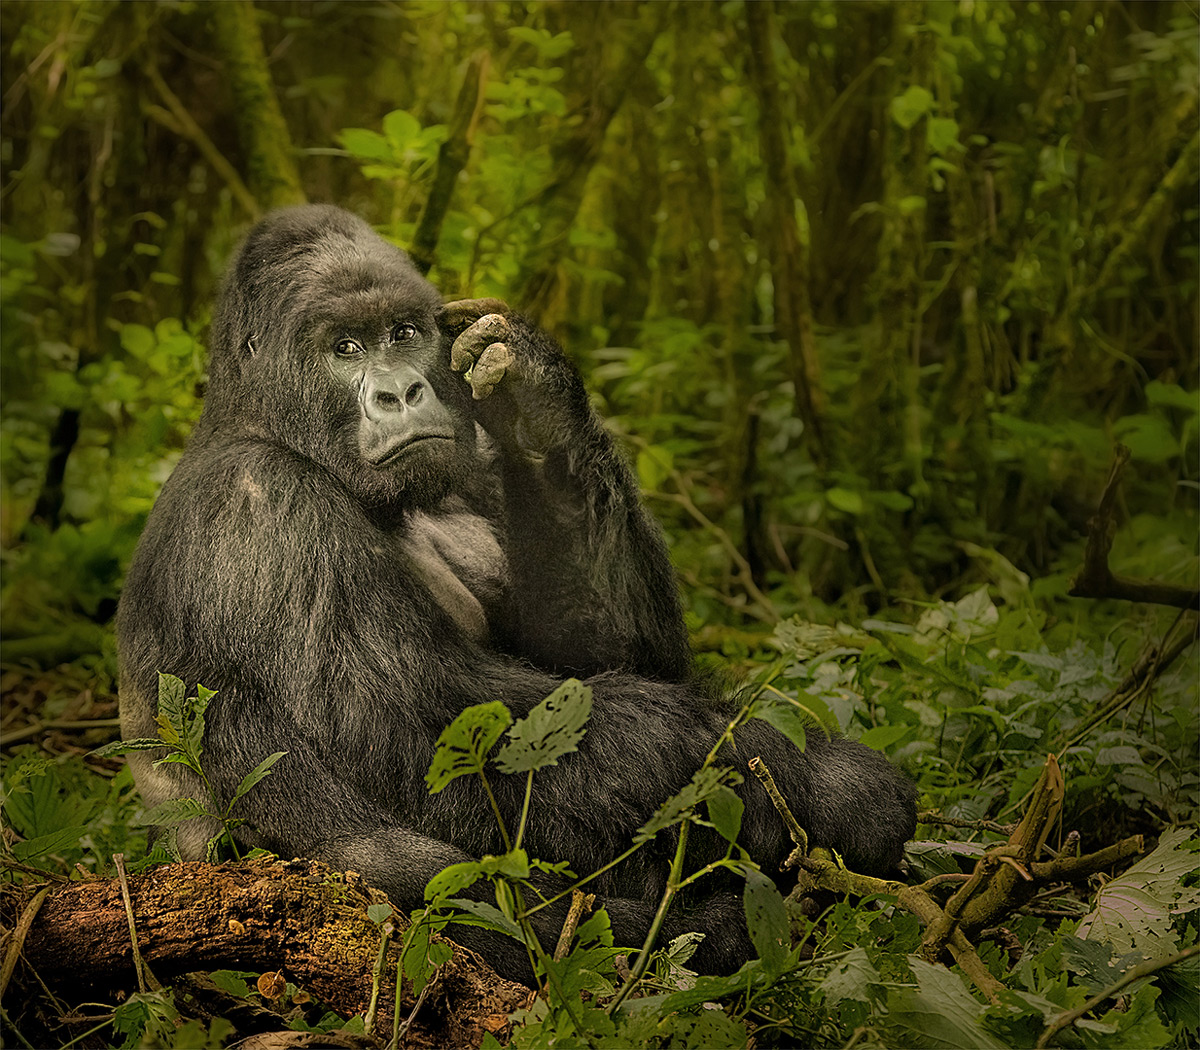 An impressive silverback mountain gorilla in Virunga National Park, Democratic Republic of the Congo © Hesté de Beer